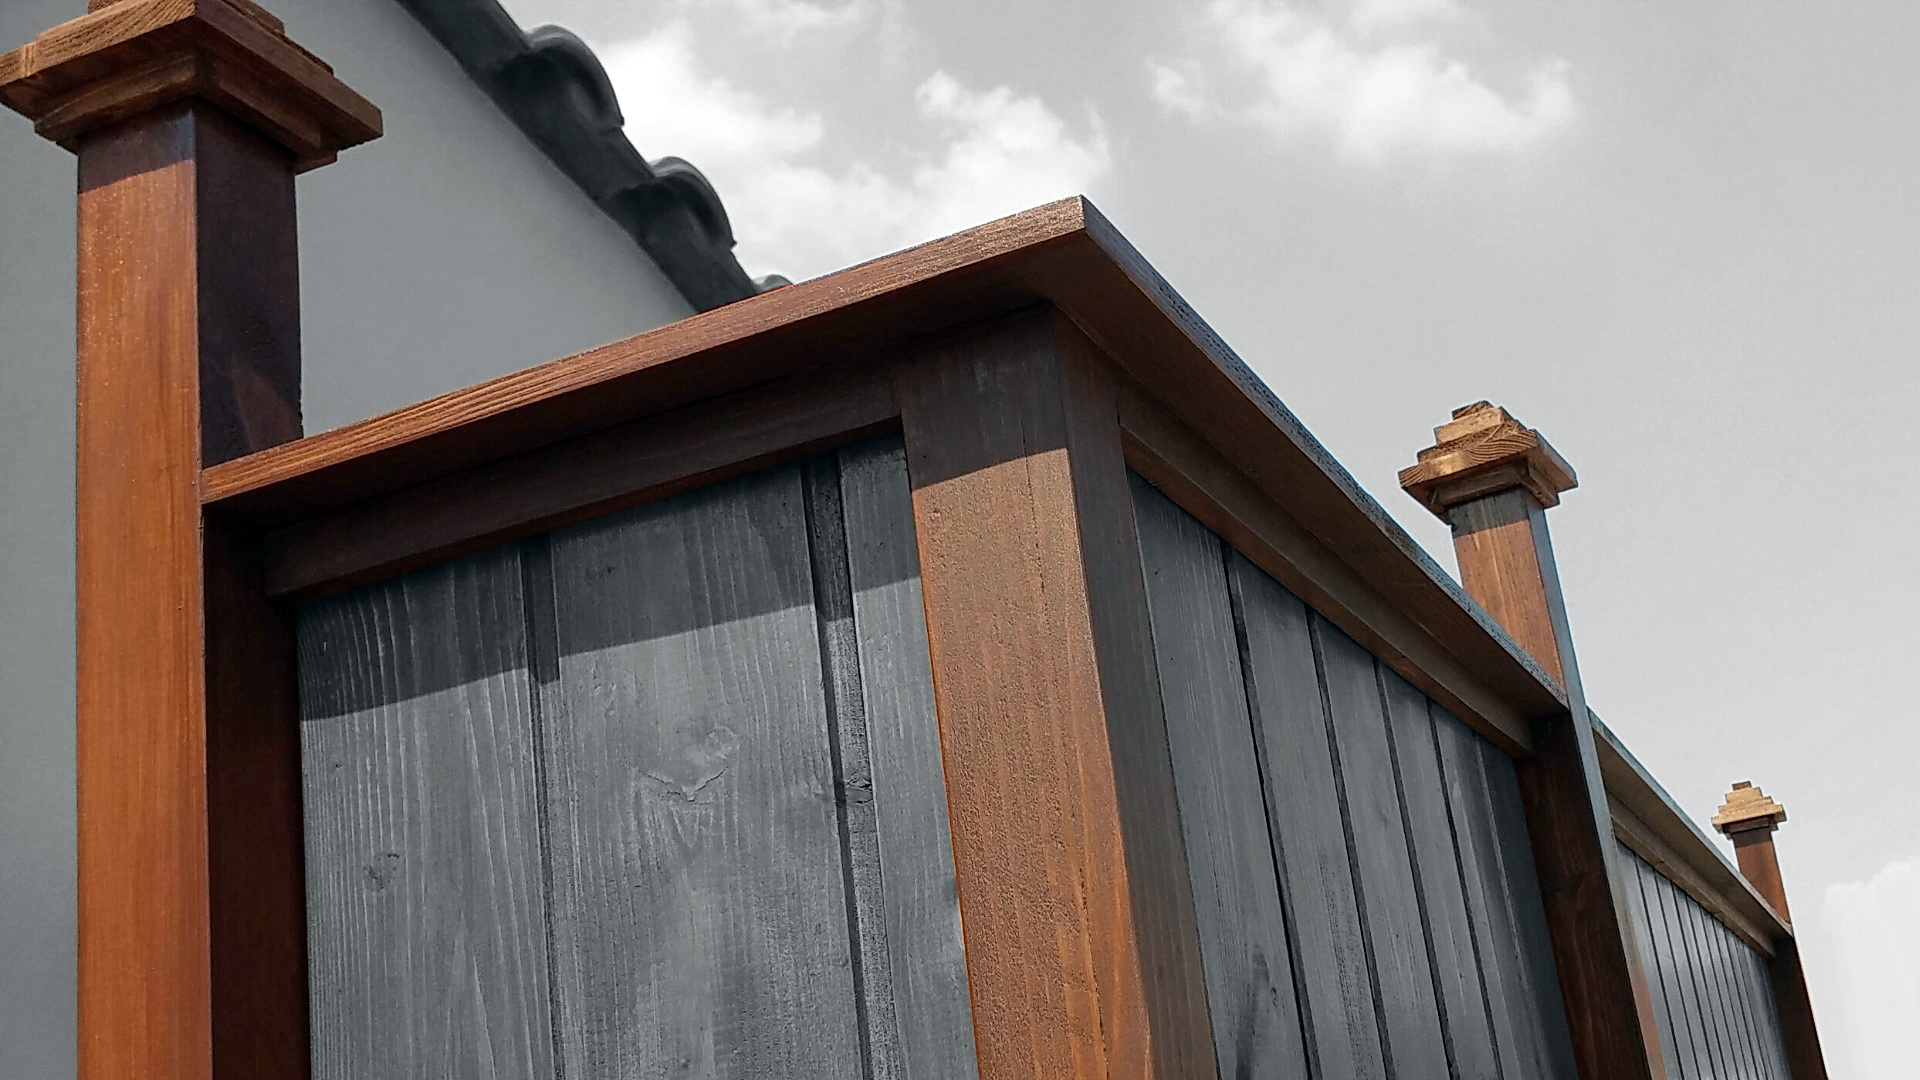 Picture of Luxurious Outdoor Shower - Part 3 [Wall Details & Post Caps]